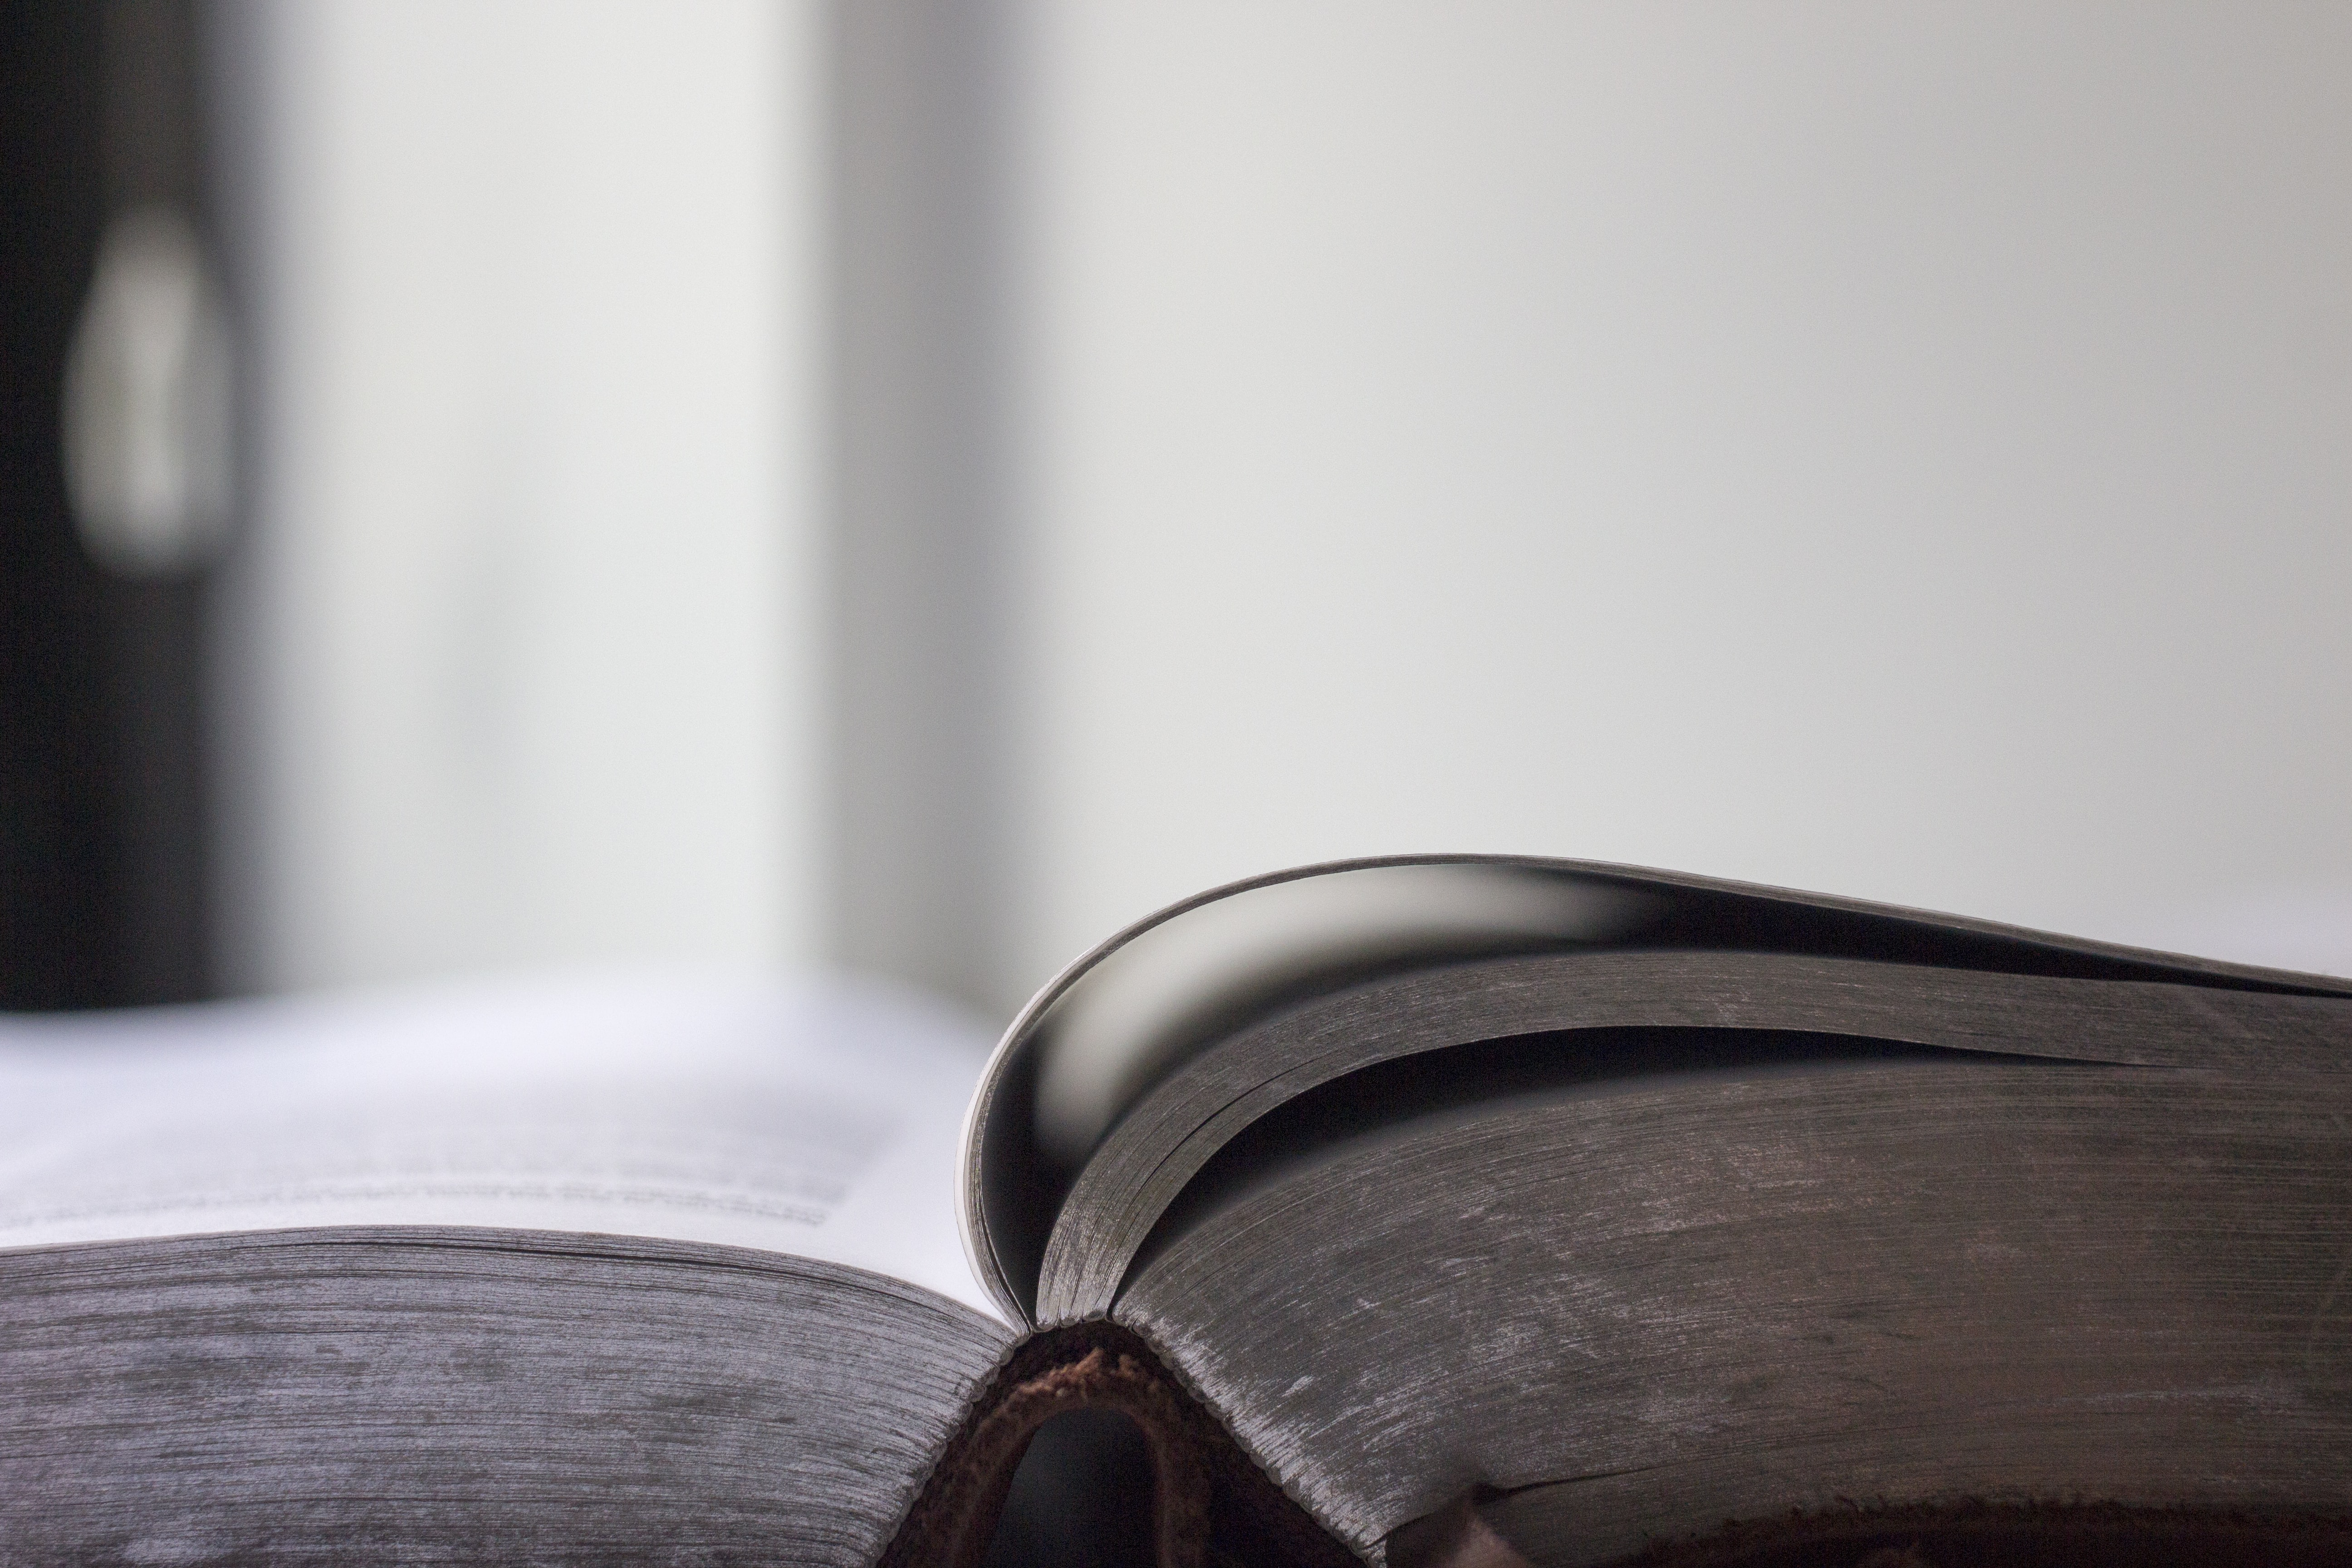 selective focus photo of an opened book